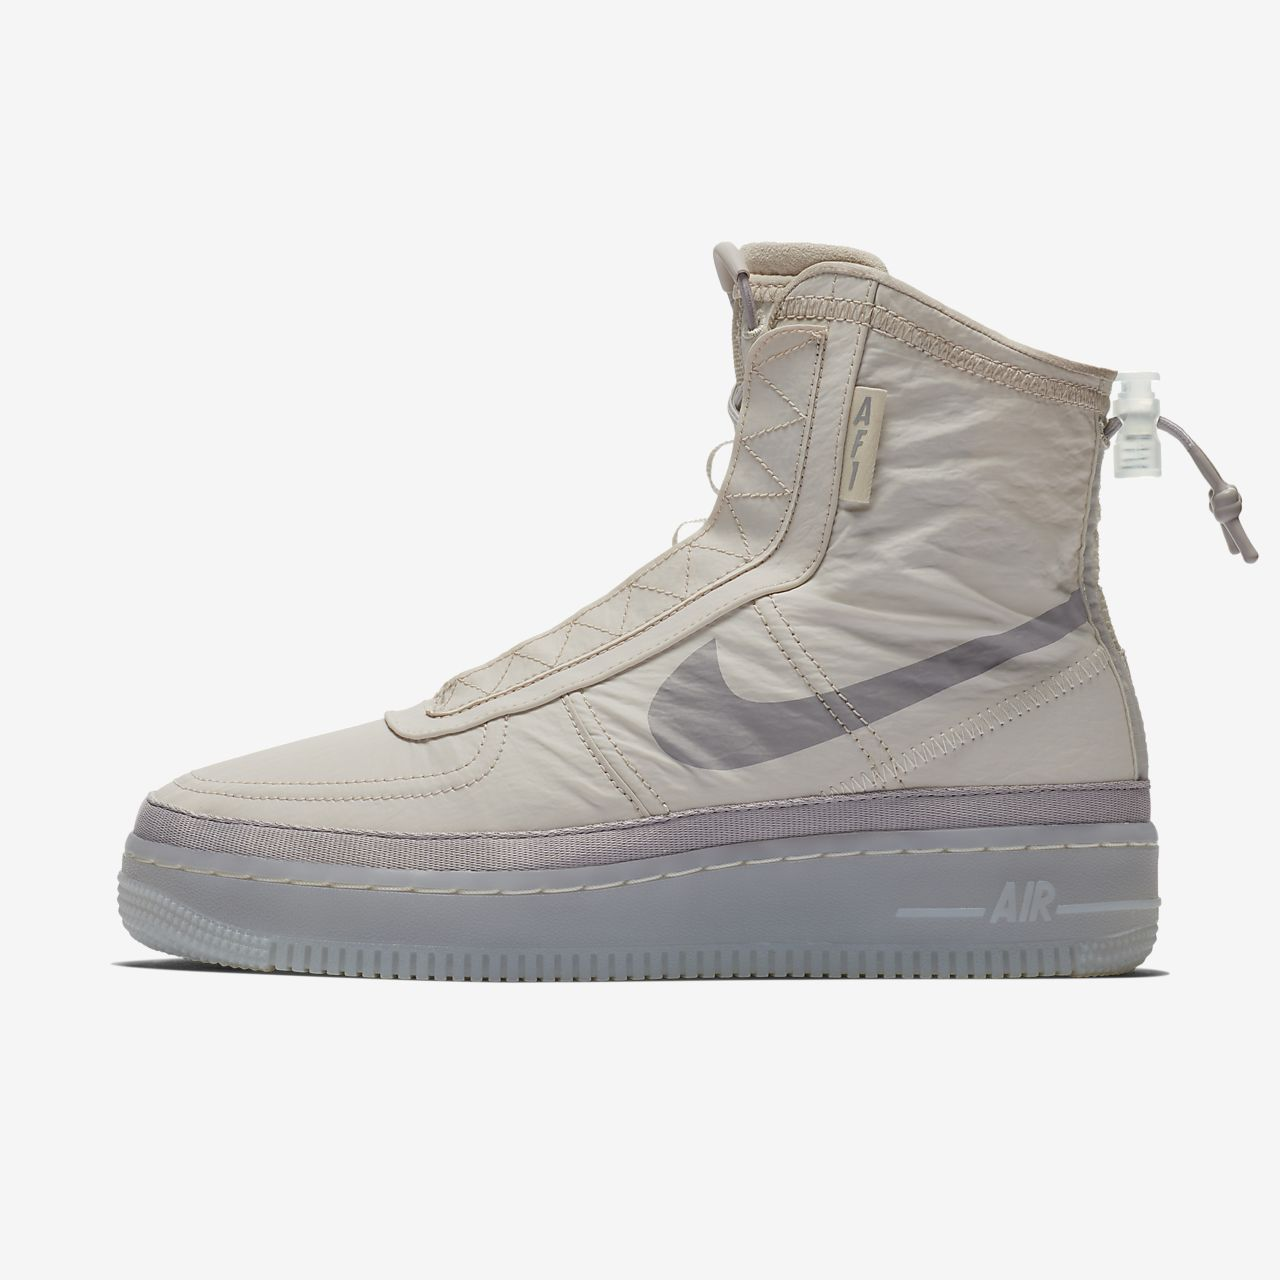 14 Best Nike wants images | Nike, Air force one shoes, Nike